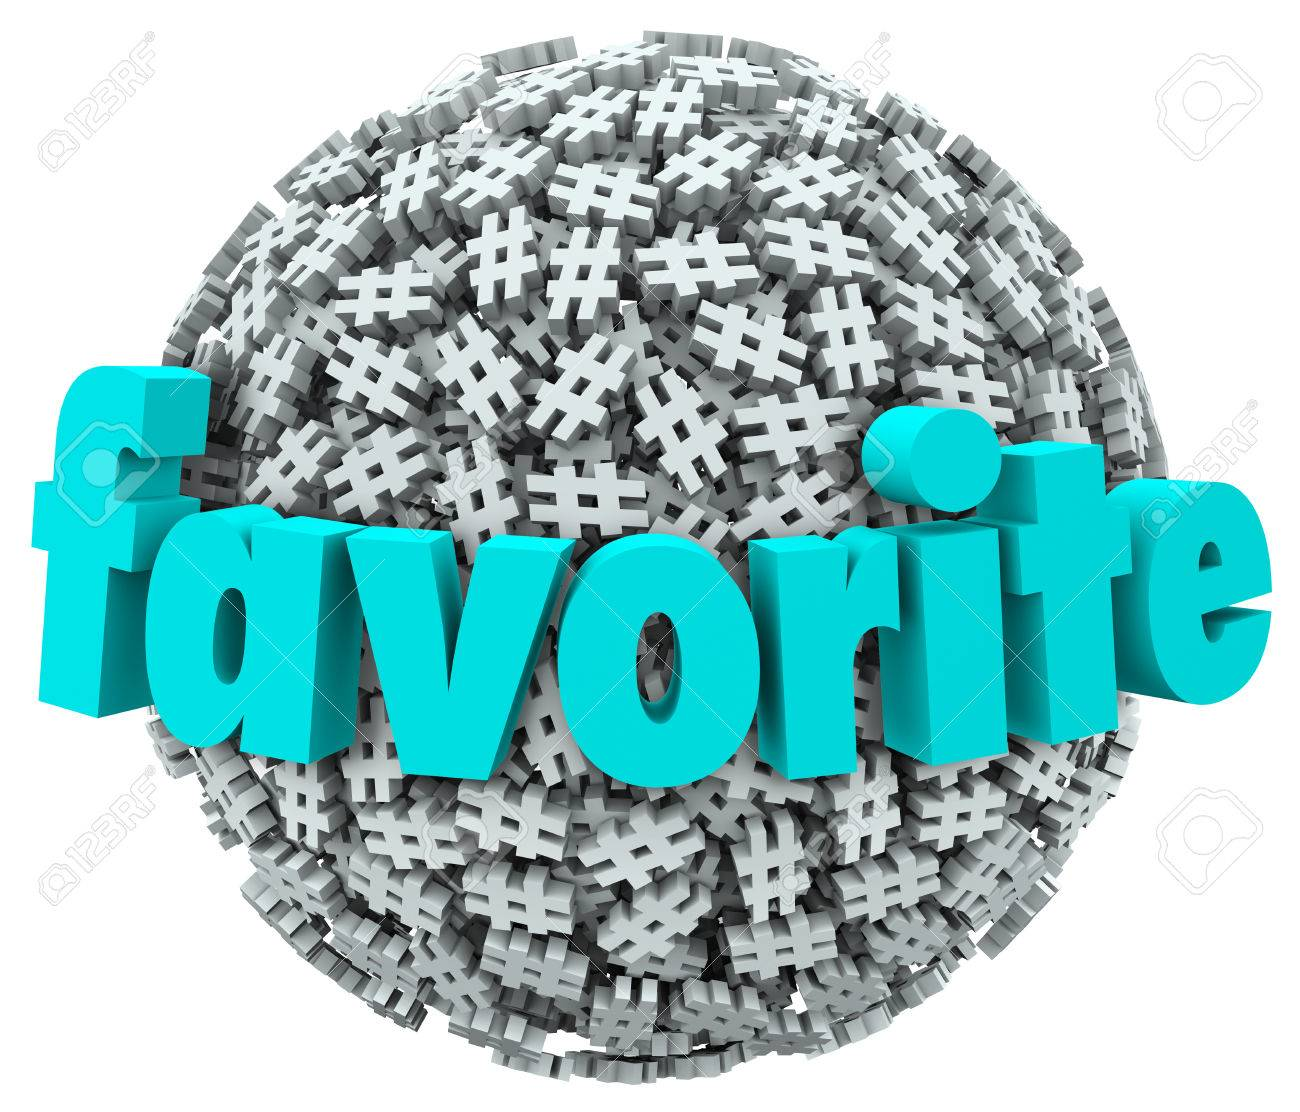 Favorite word on a ball or sphere of hash tag symbols to illustrate a popular topic, trend or meme on the internet or social networking site Stock Photo - 25254970